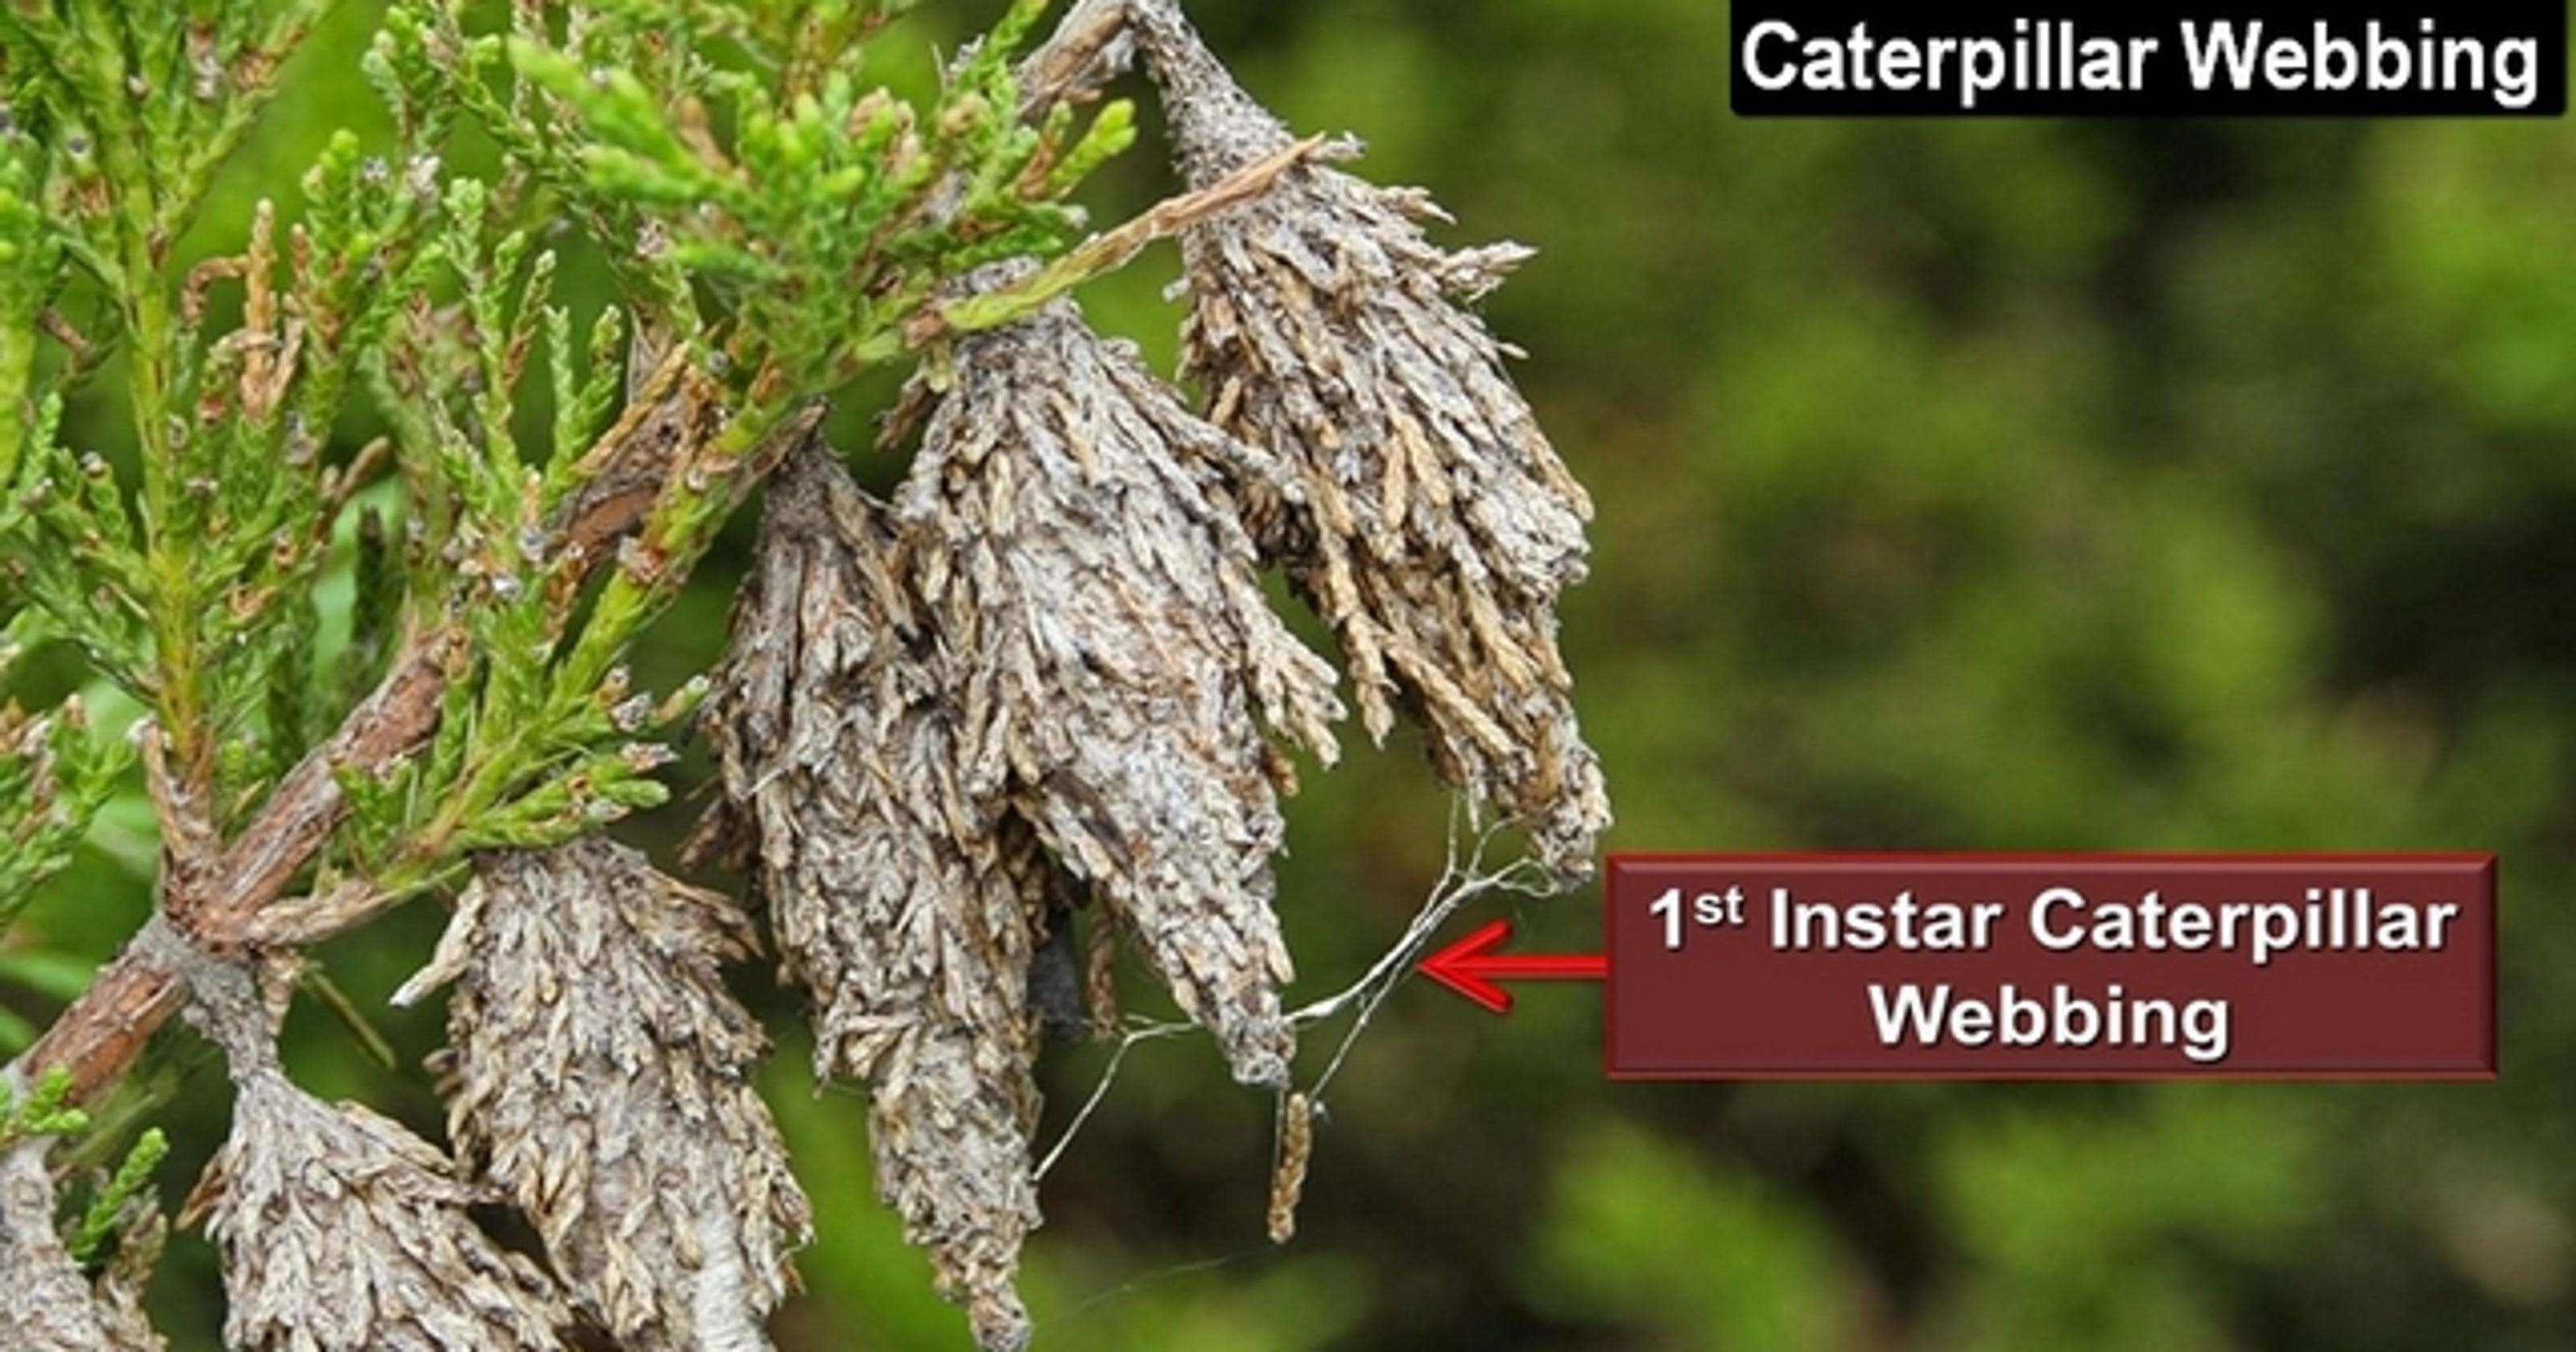 OSU Extension: Bagworms are beginning to hatch